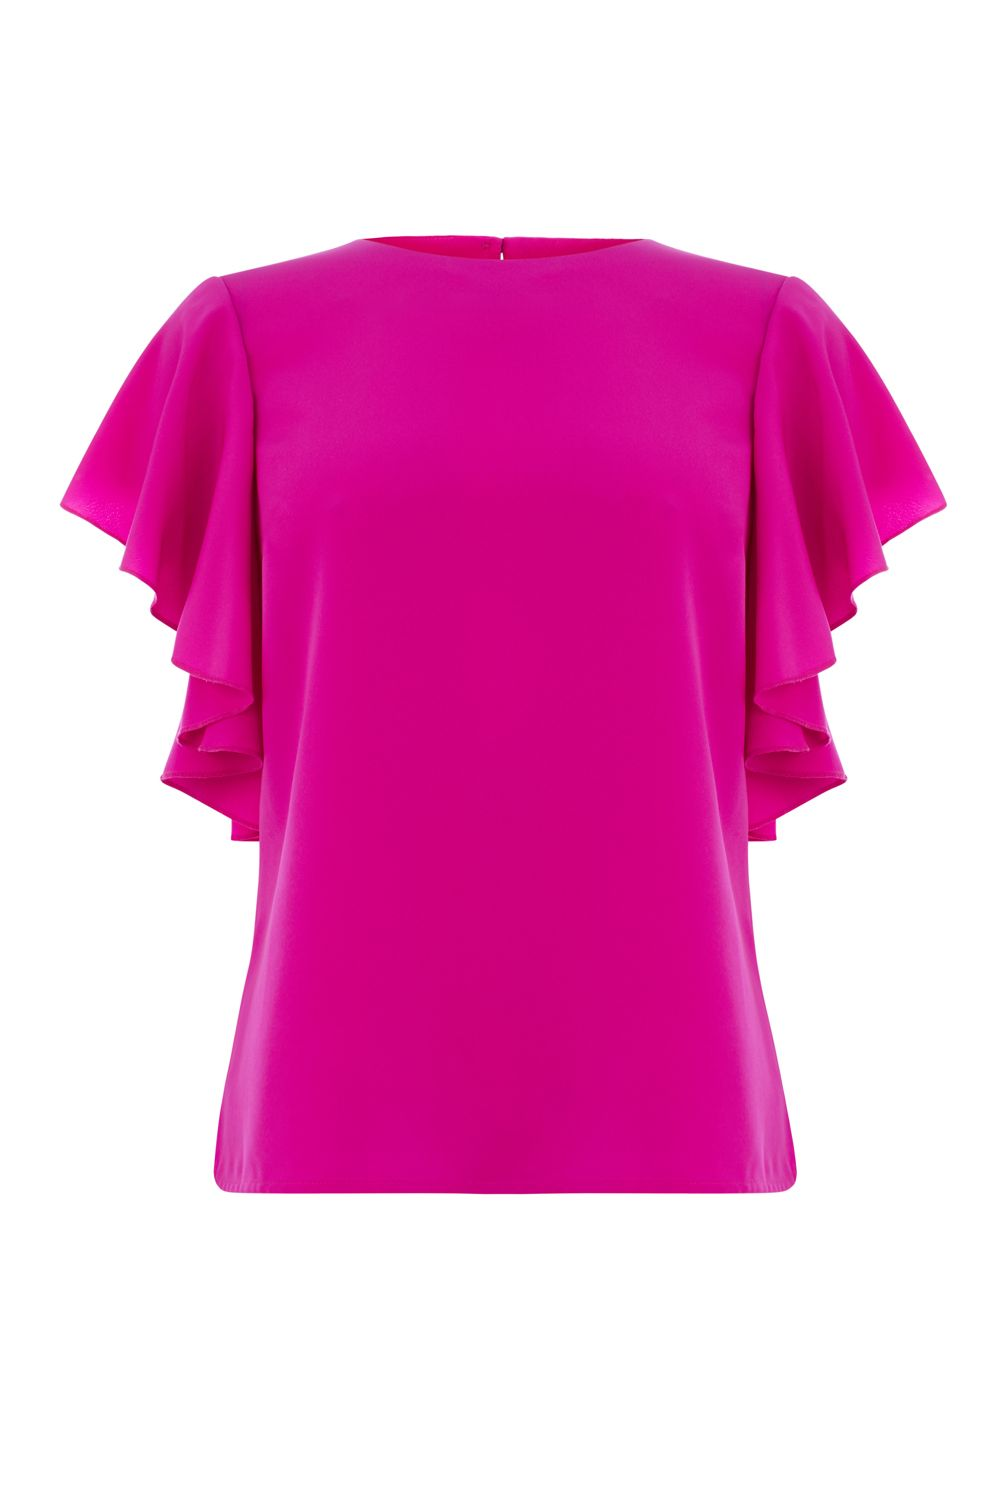 Warehouse Ruffle Top, Hot Pink